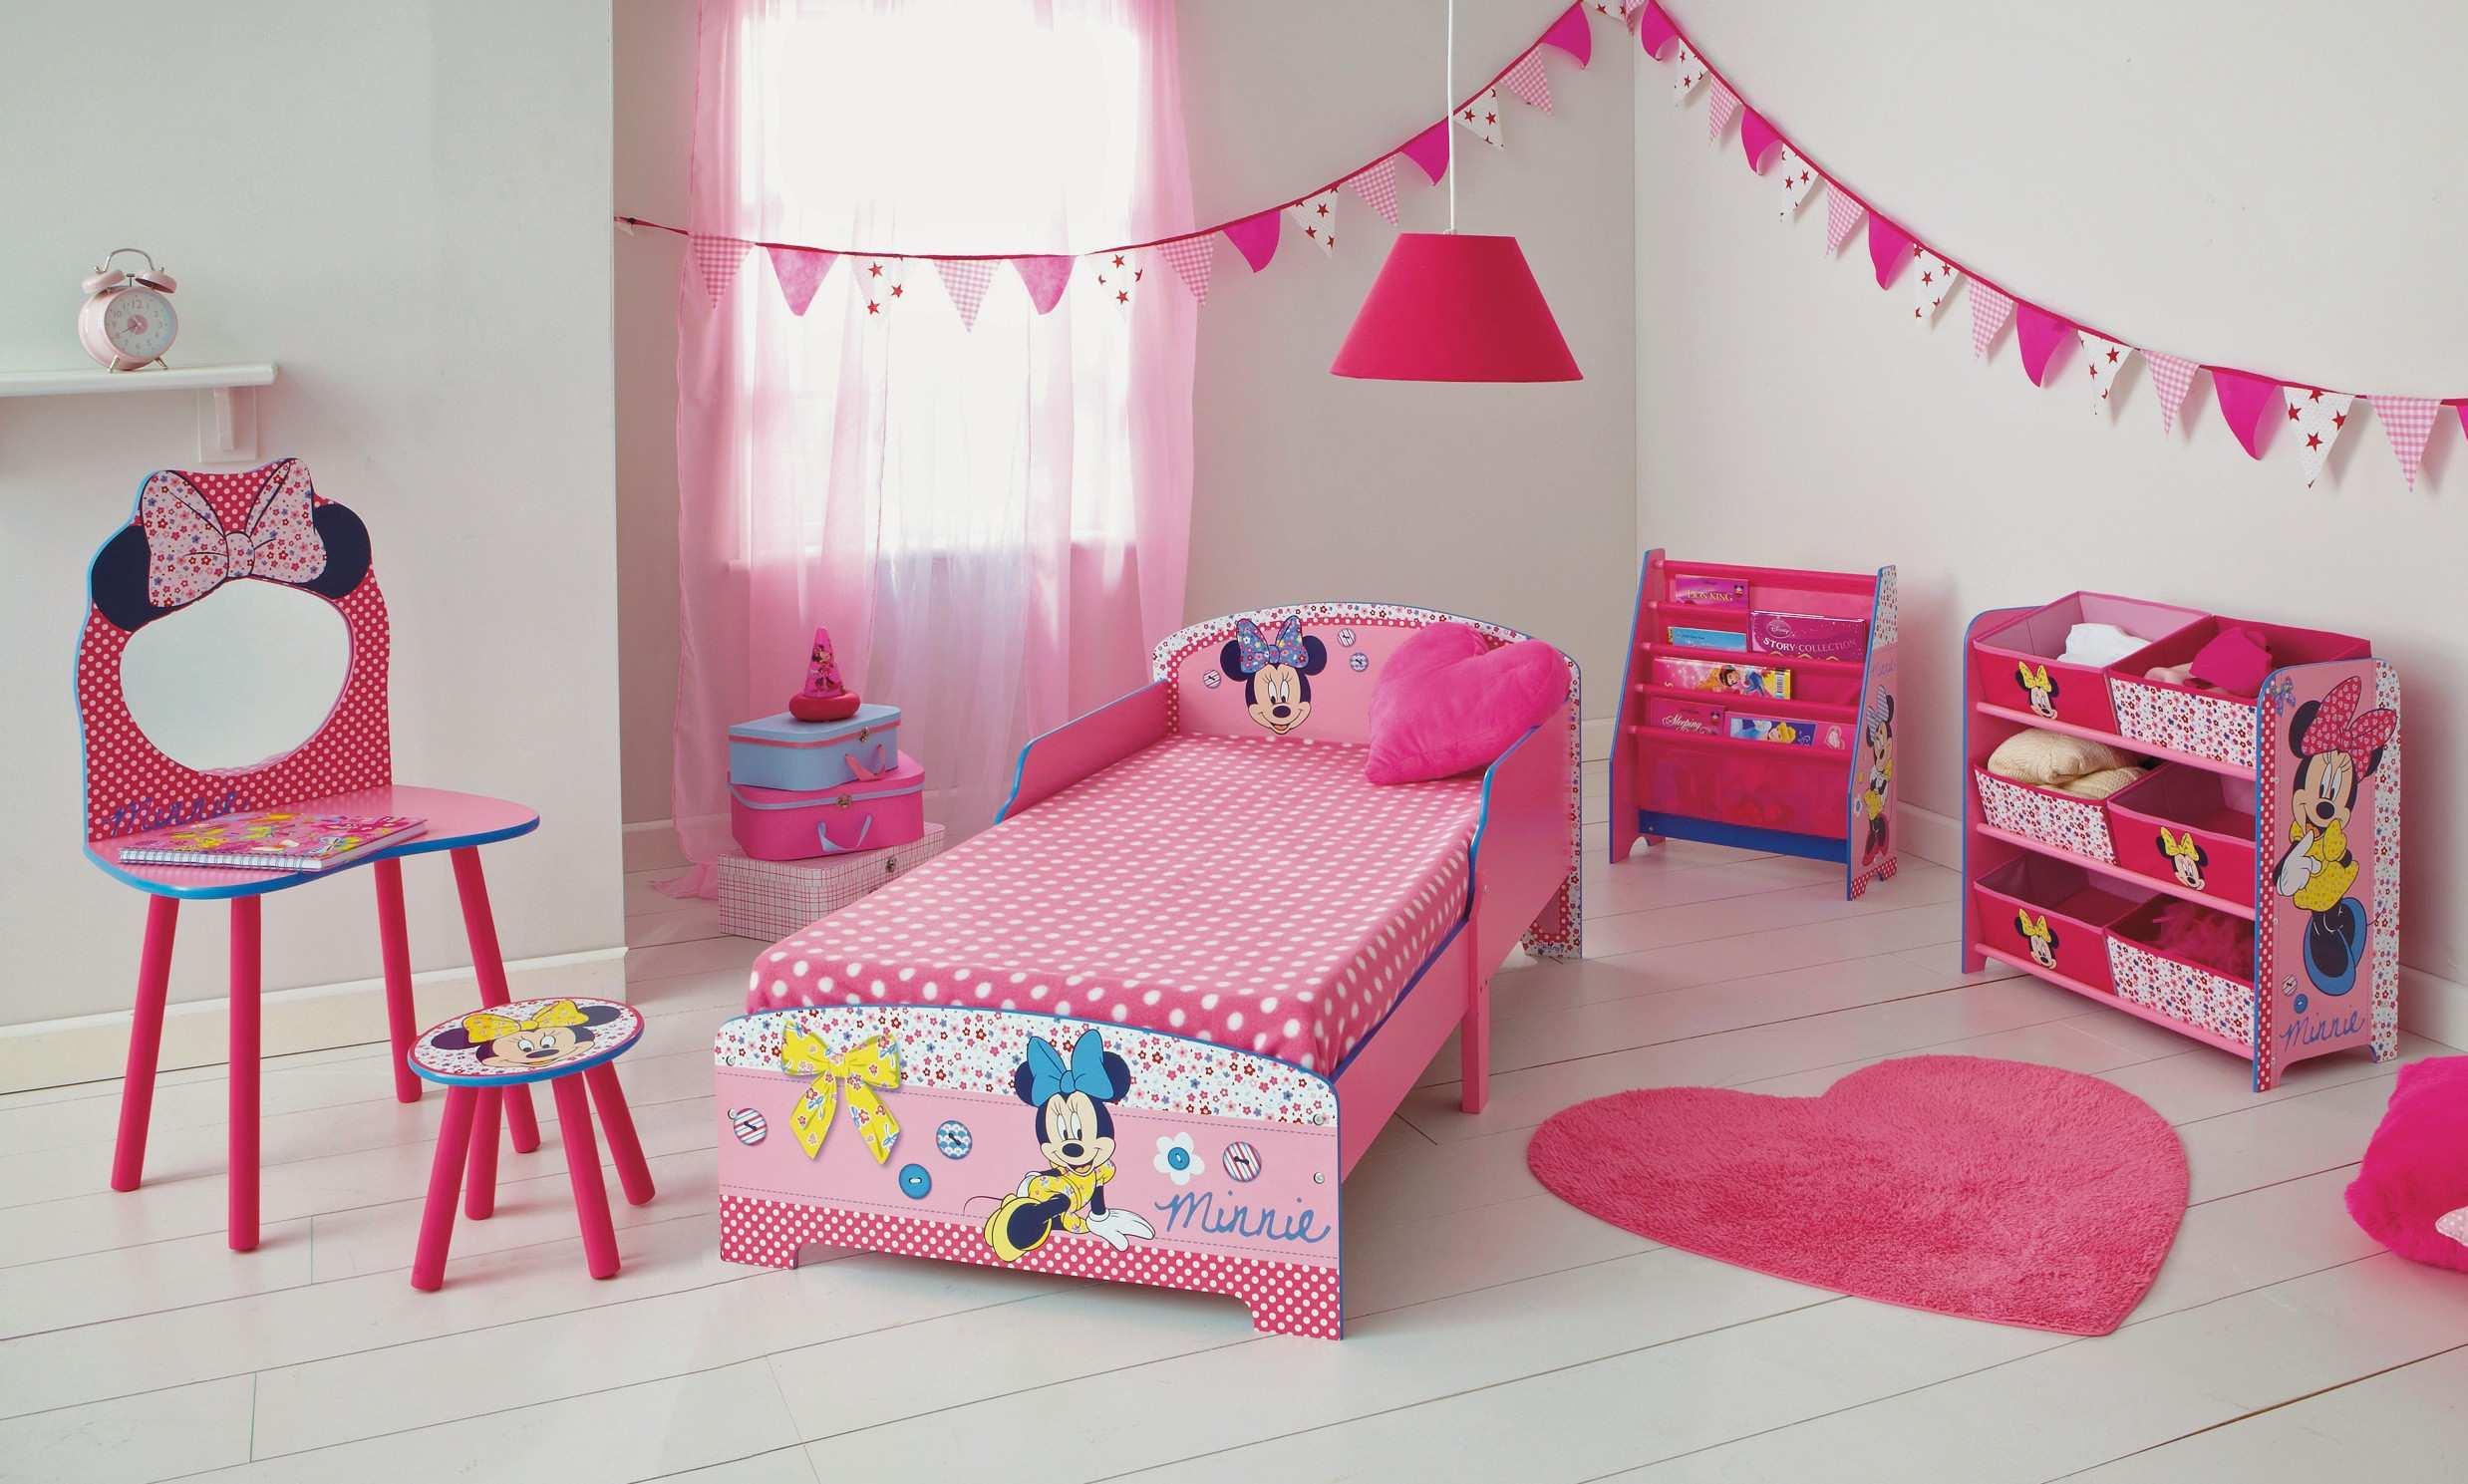 Minnie Mouse Room Decoration Stickers Lovely Decorations Minnie